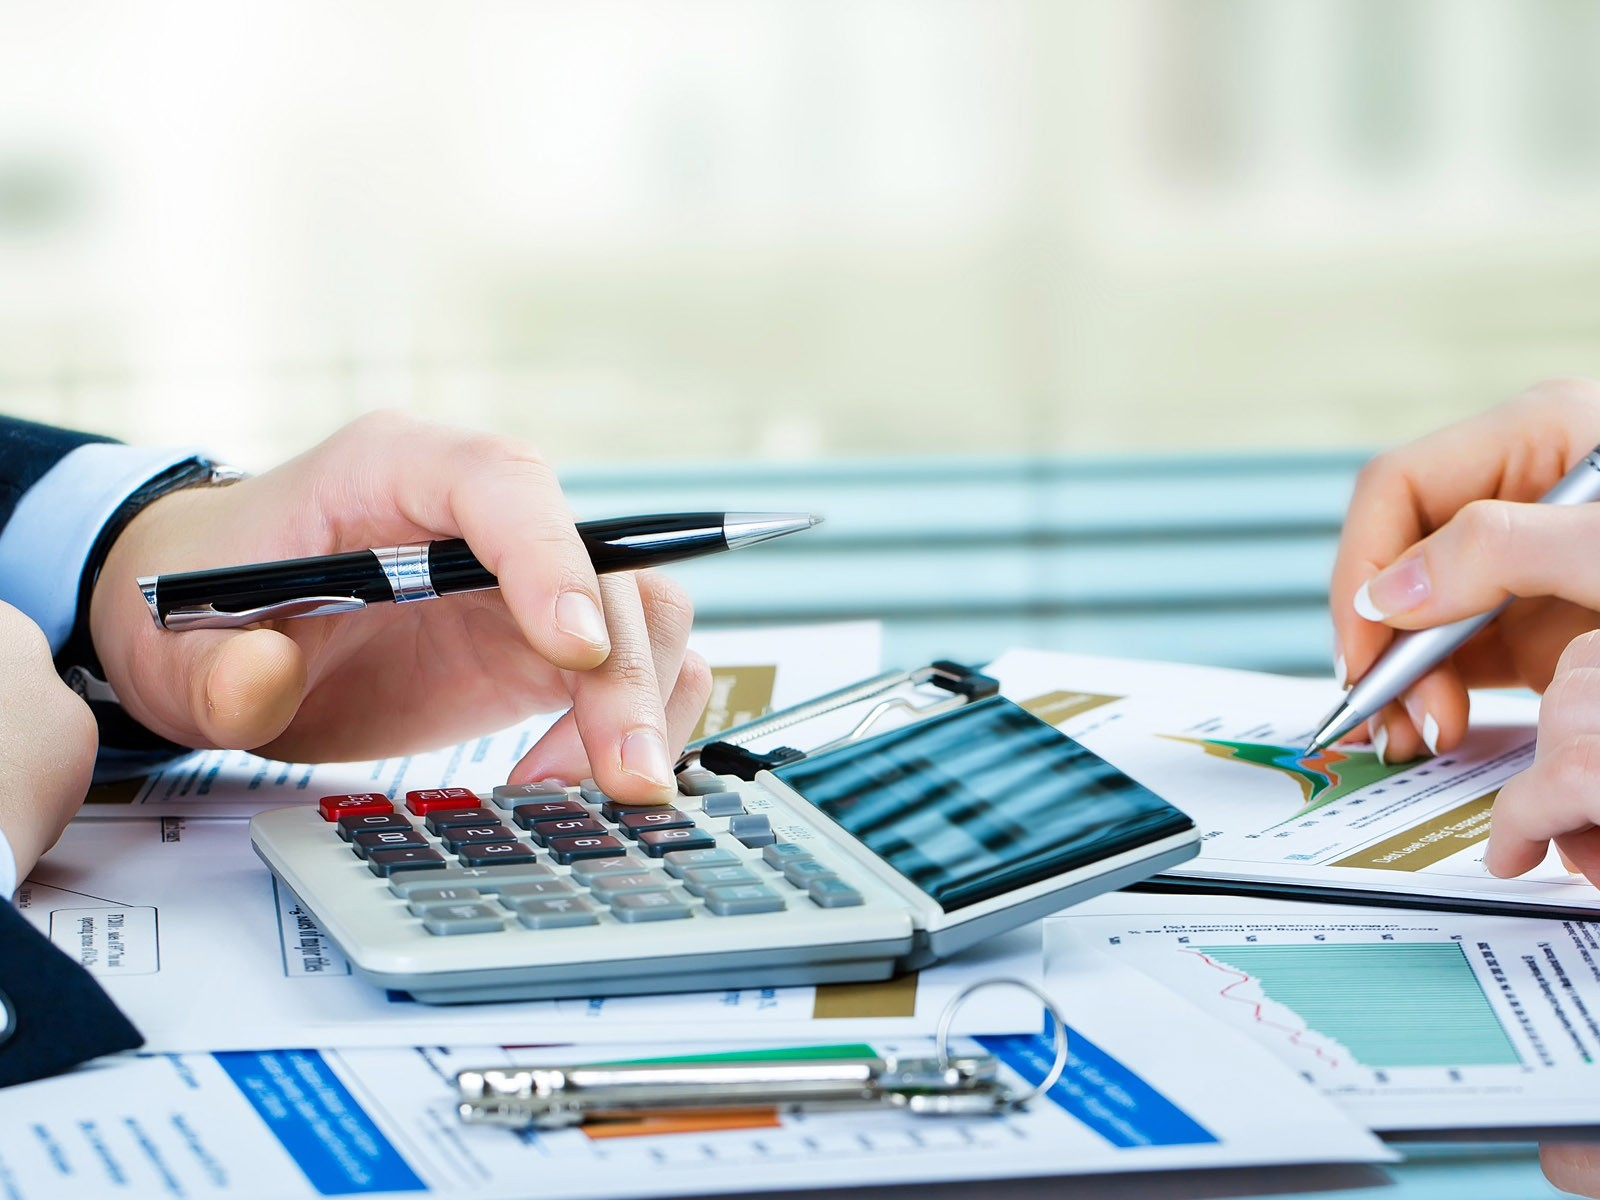 Five Things Every CPA Should Look For When Outsourcing Bookkeeping Services